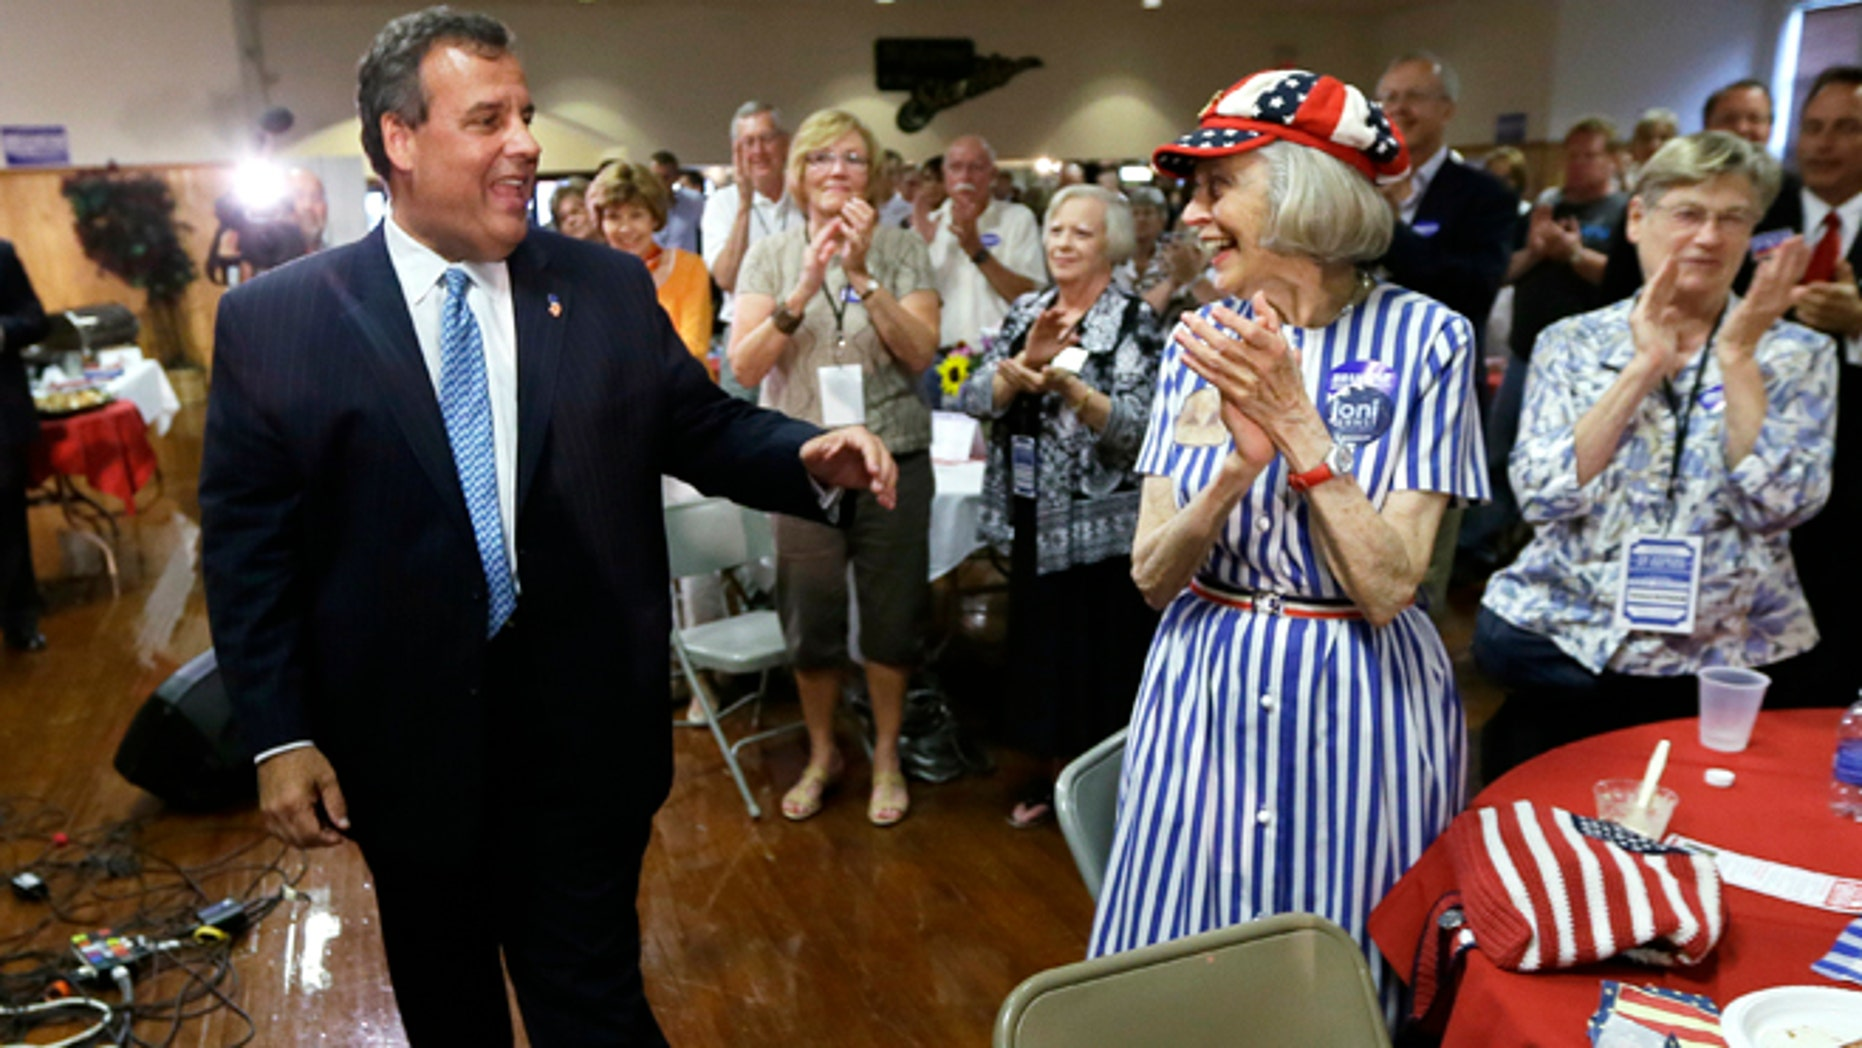 This July 17, 2014, file photo shows New Jersey Gov. Chris Christie greeting Iowans after speaking at a fundraiser for Iowa Gov. Terry Branstad in Davenport, Iowa.